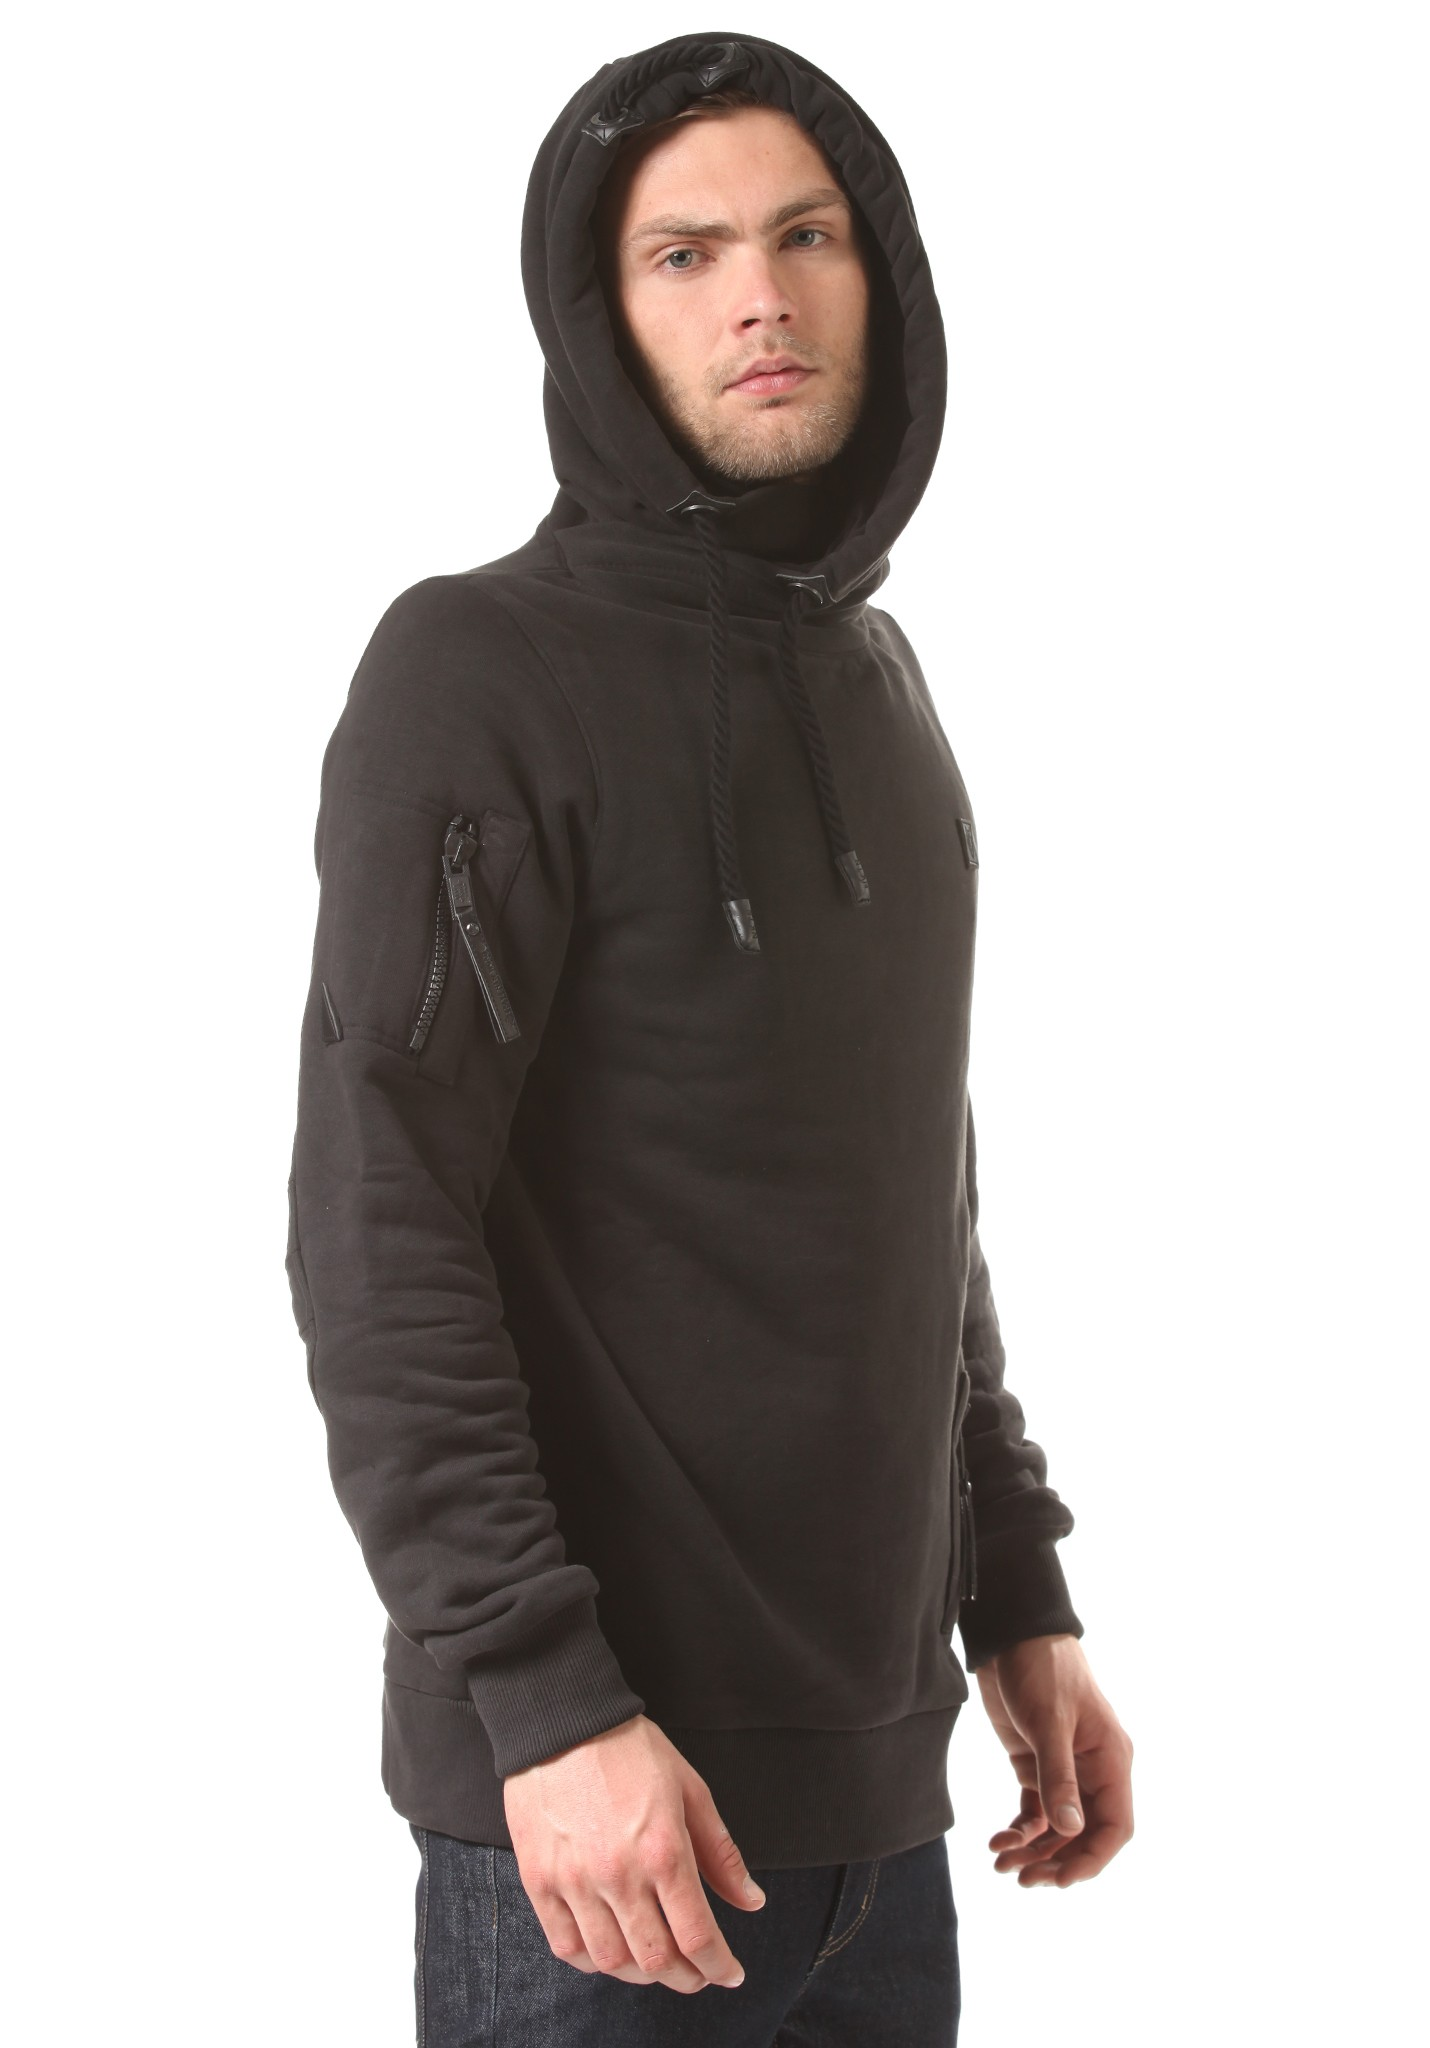 neu naketano pimp herren kapuzenpullover pullover hoodie kapuzenjacke ebay. Black Bedroom Furniture Sets. Home Design Ideas